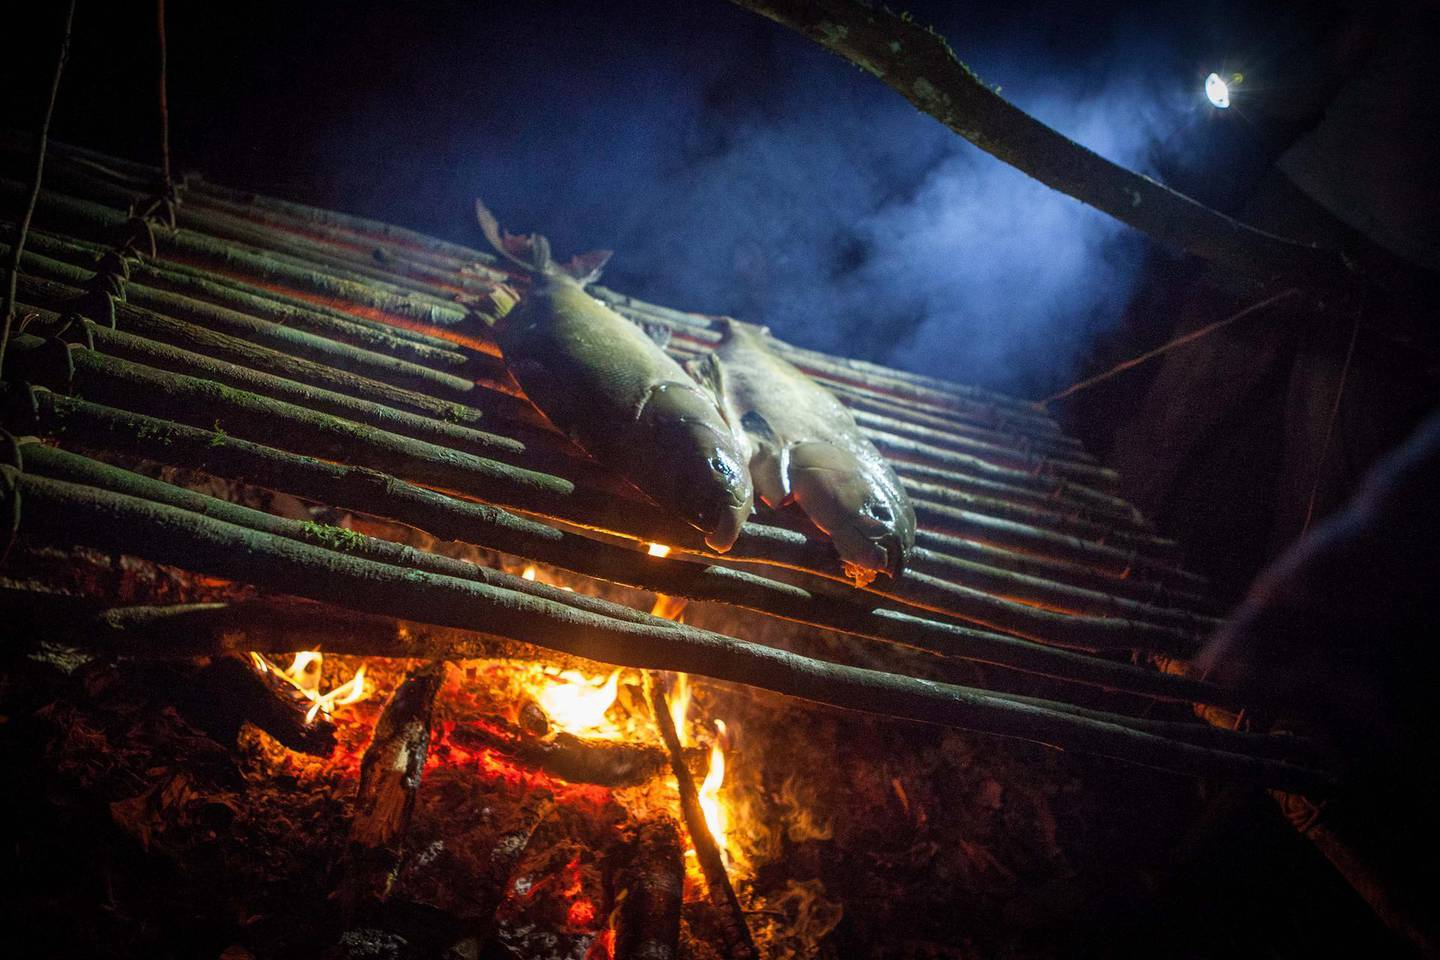 Amazonian-style dinner. Photo by Malte Clavin